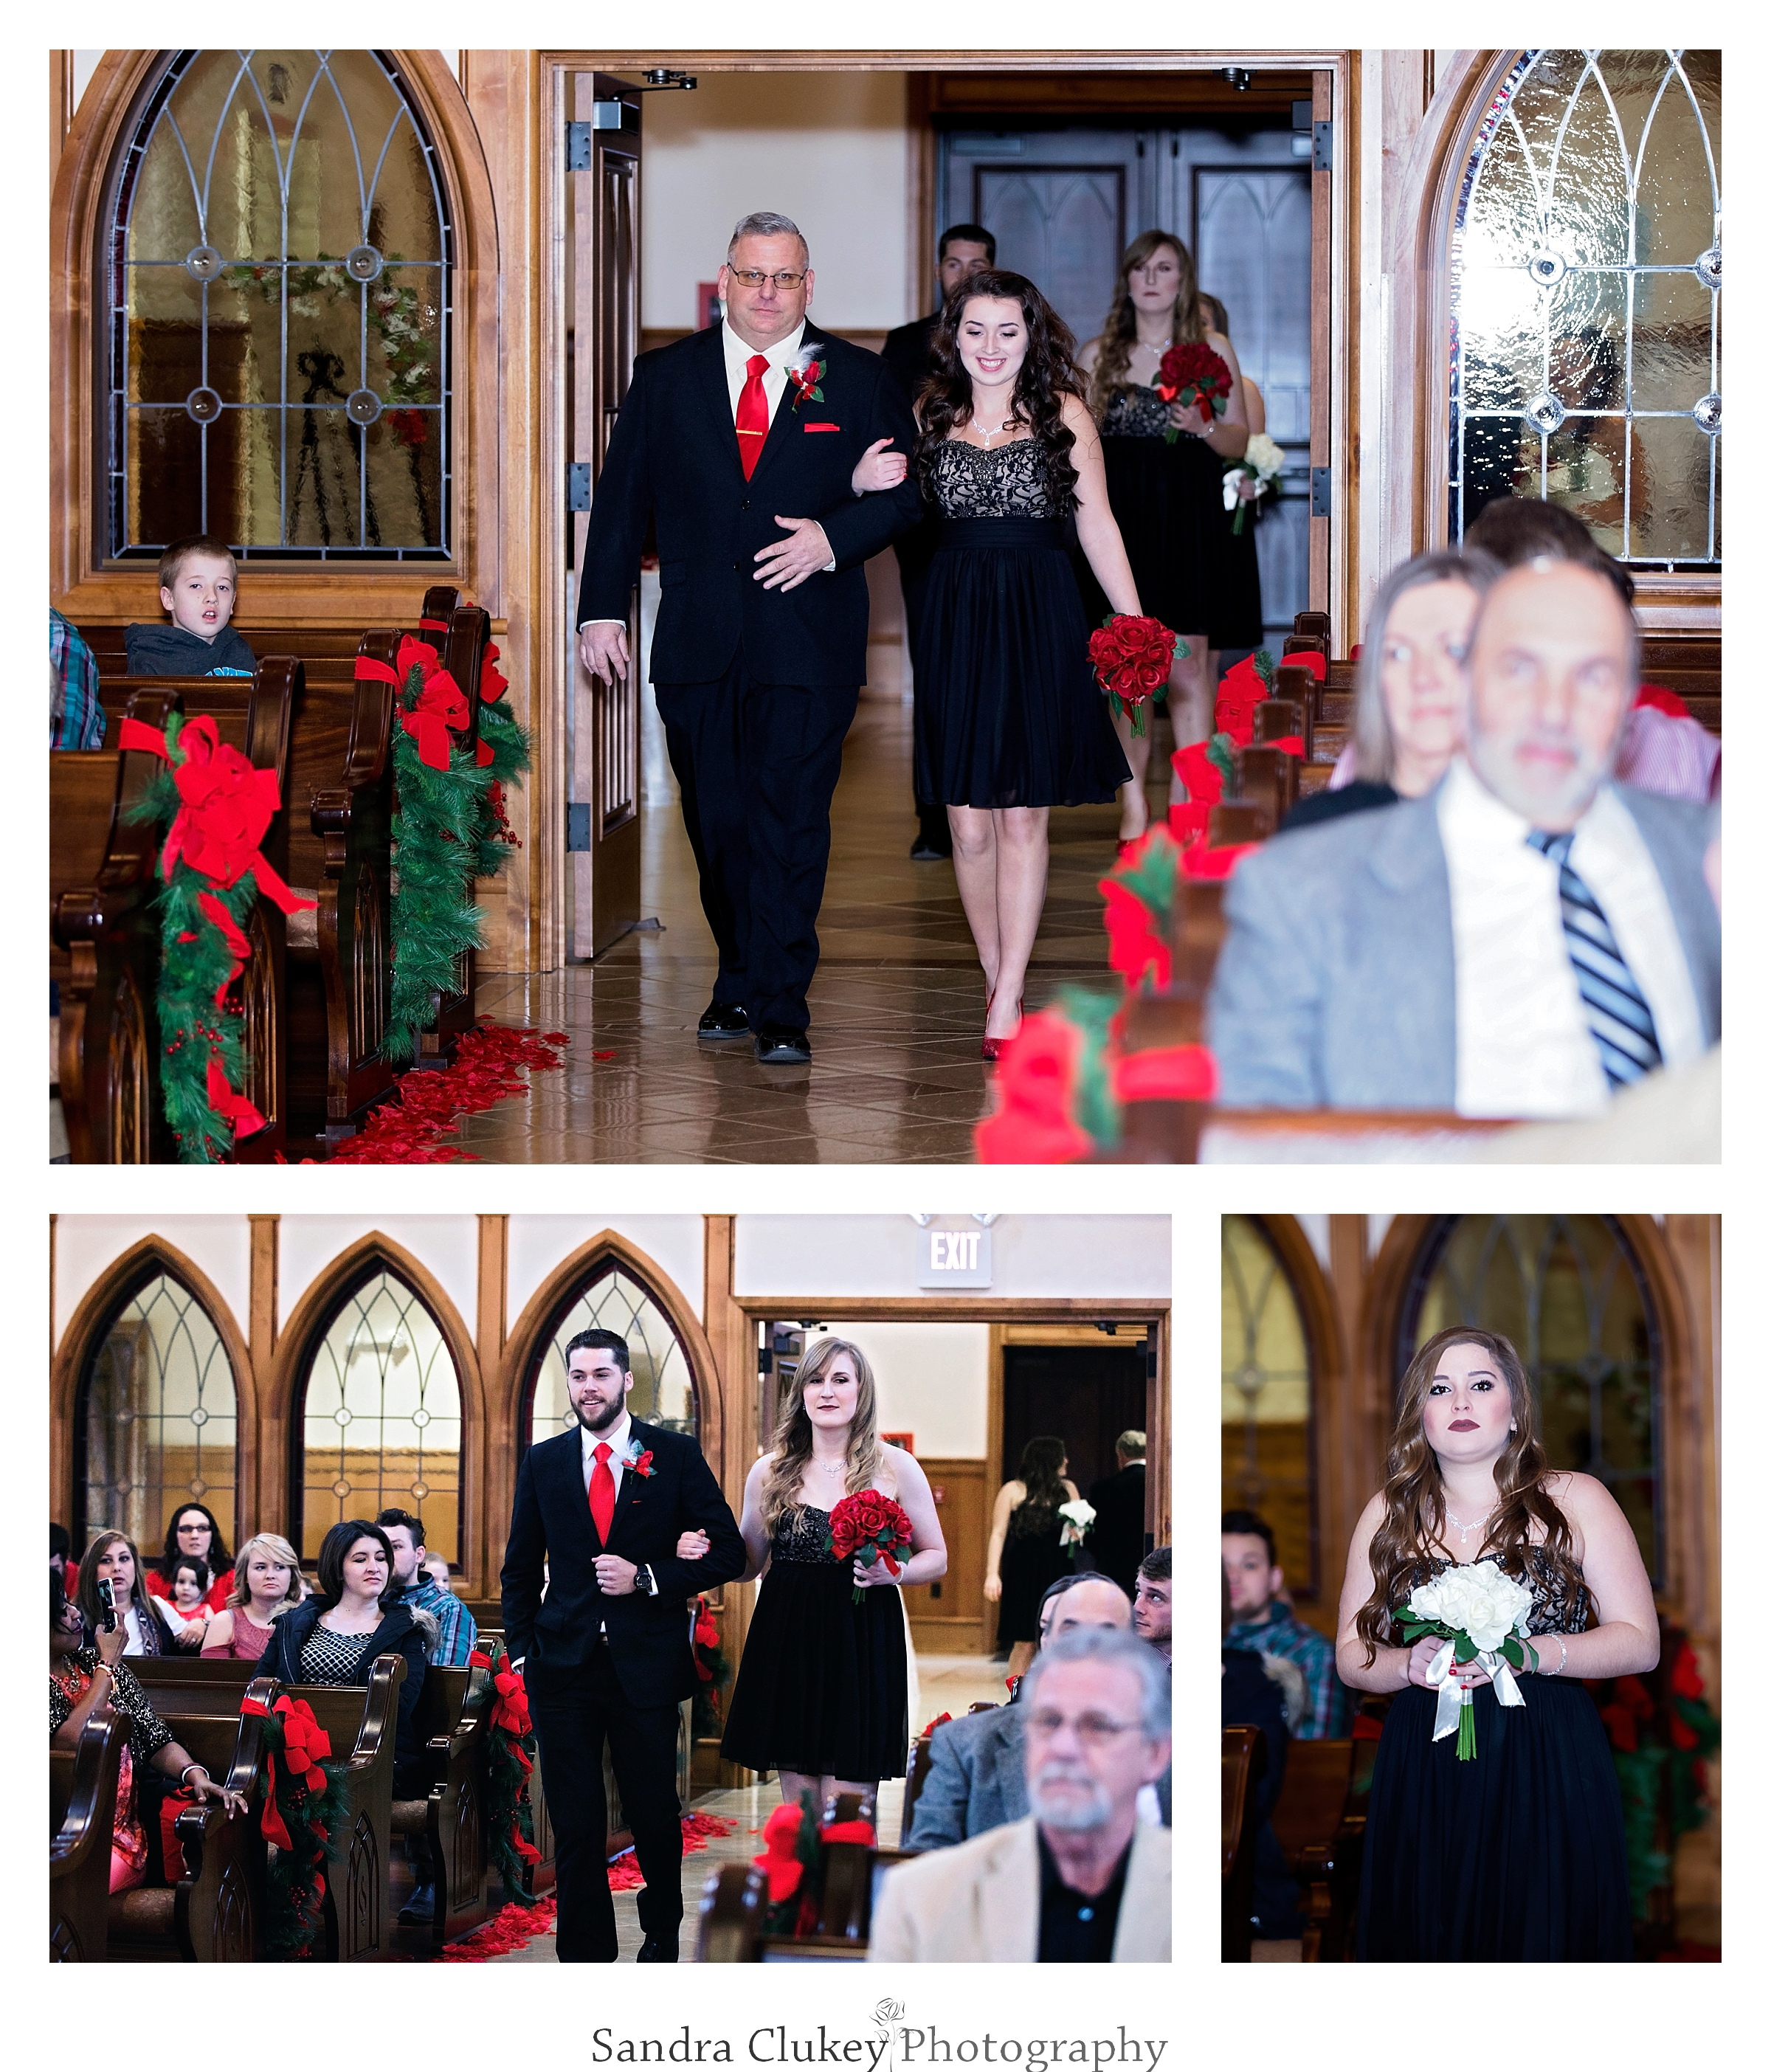 The wedding party enters the chapel at  Lee University chapel, Cleveland TN.